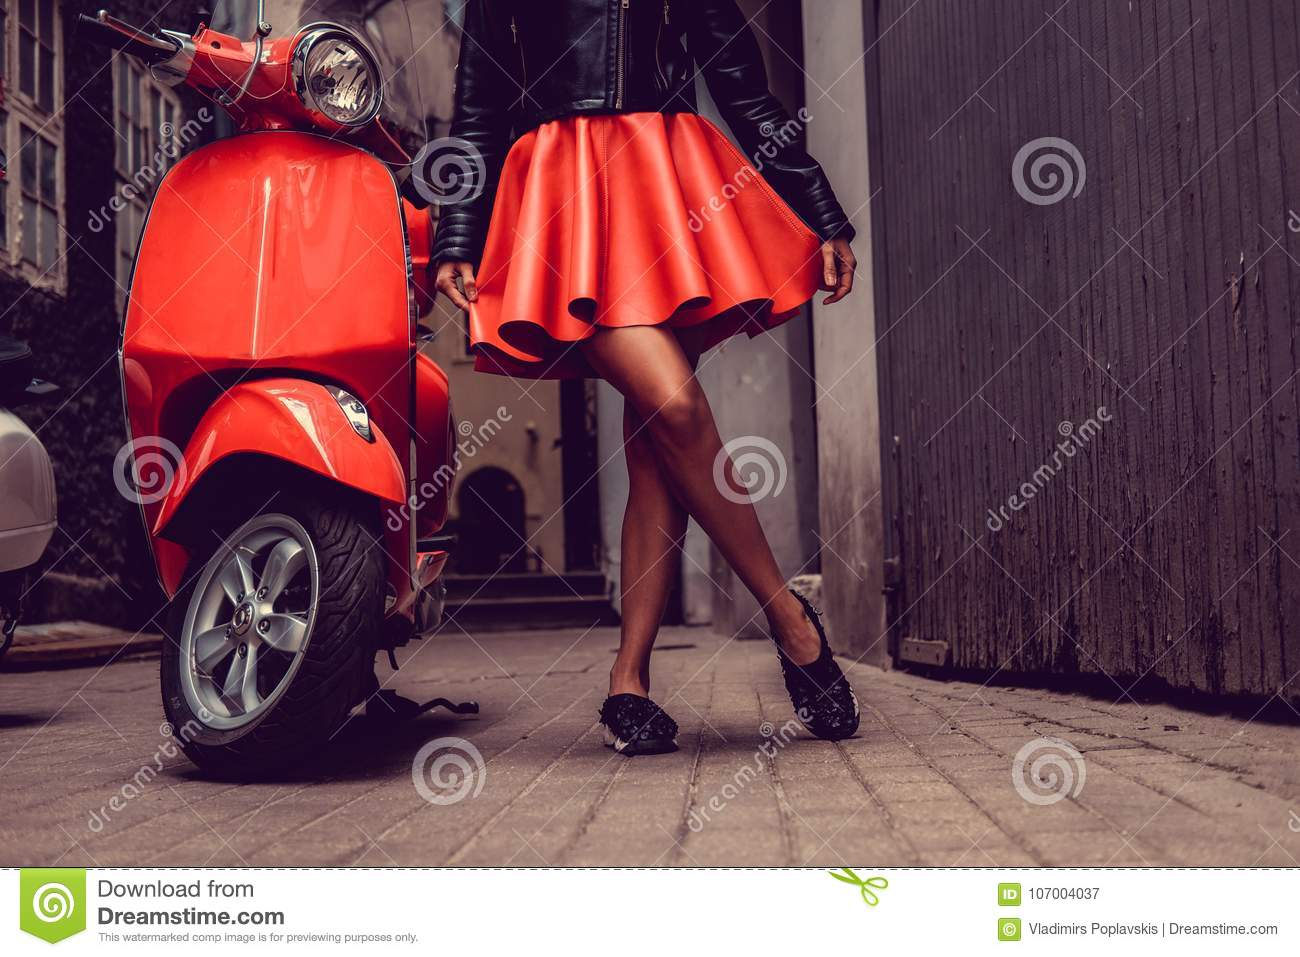 Woman`s legs near red motor scooter.